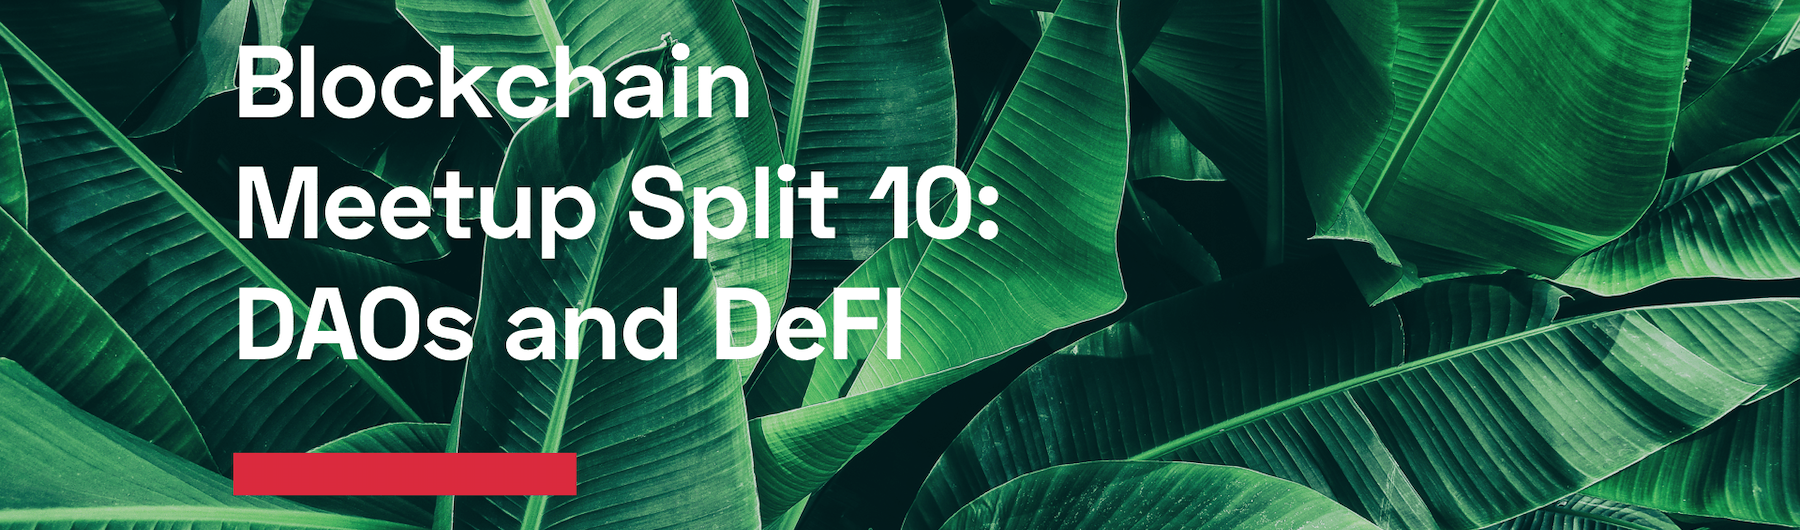 10. Split Blockchain Meetup: DAOs and DeFI